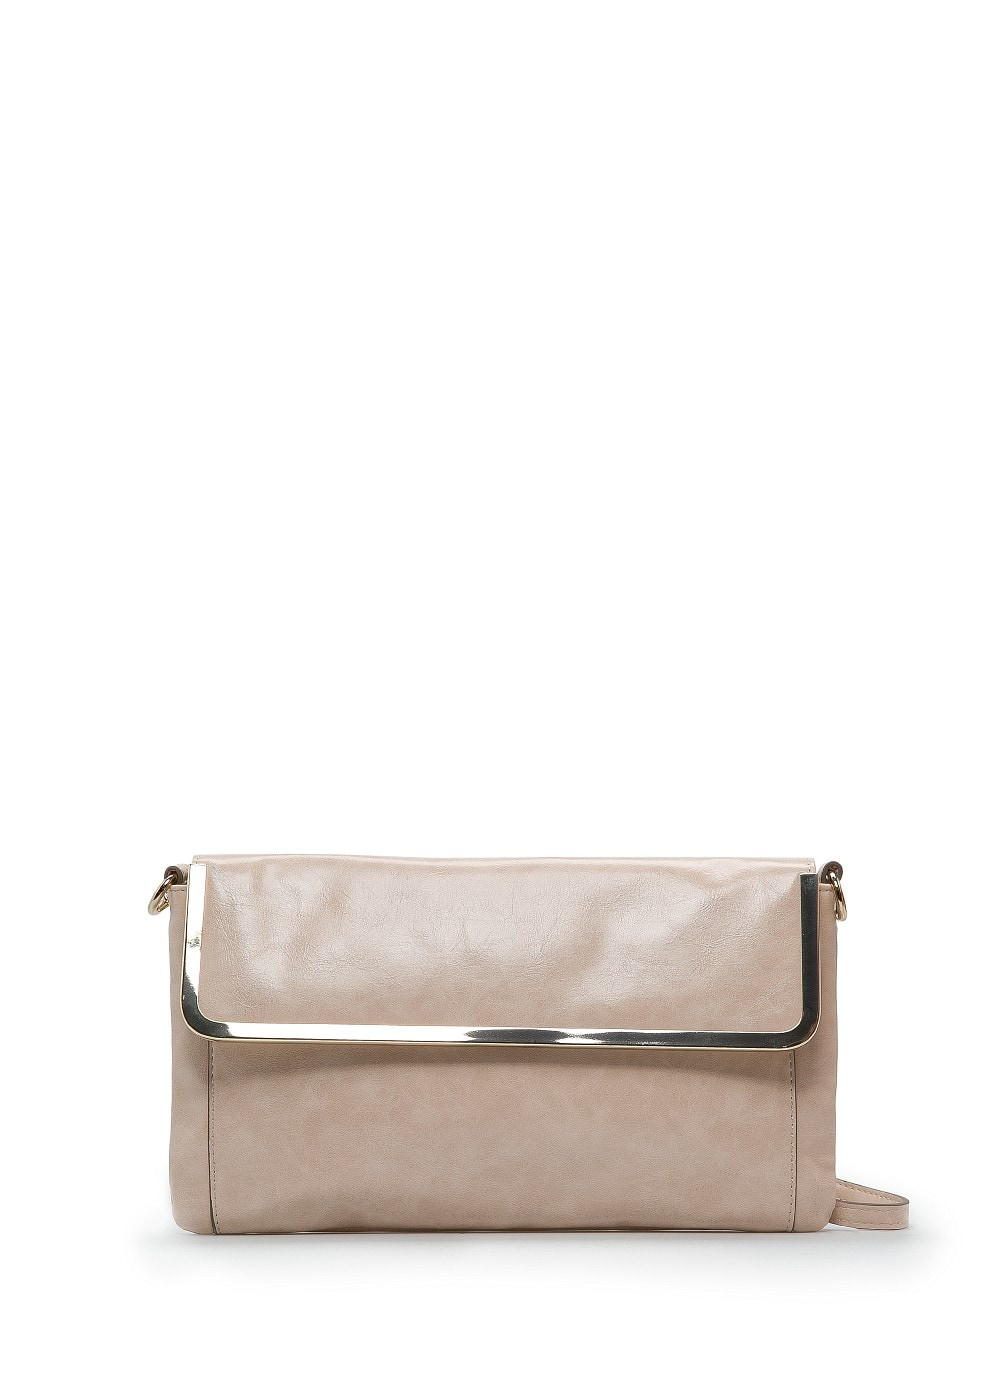 Metal frame shoulder bag